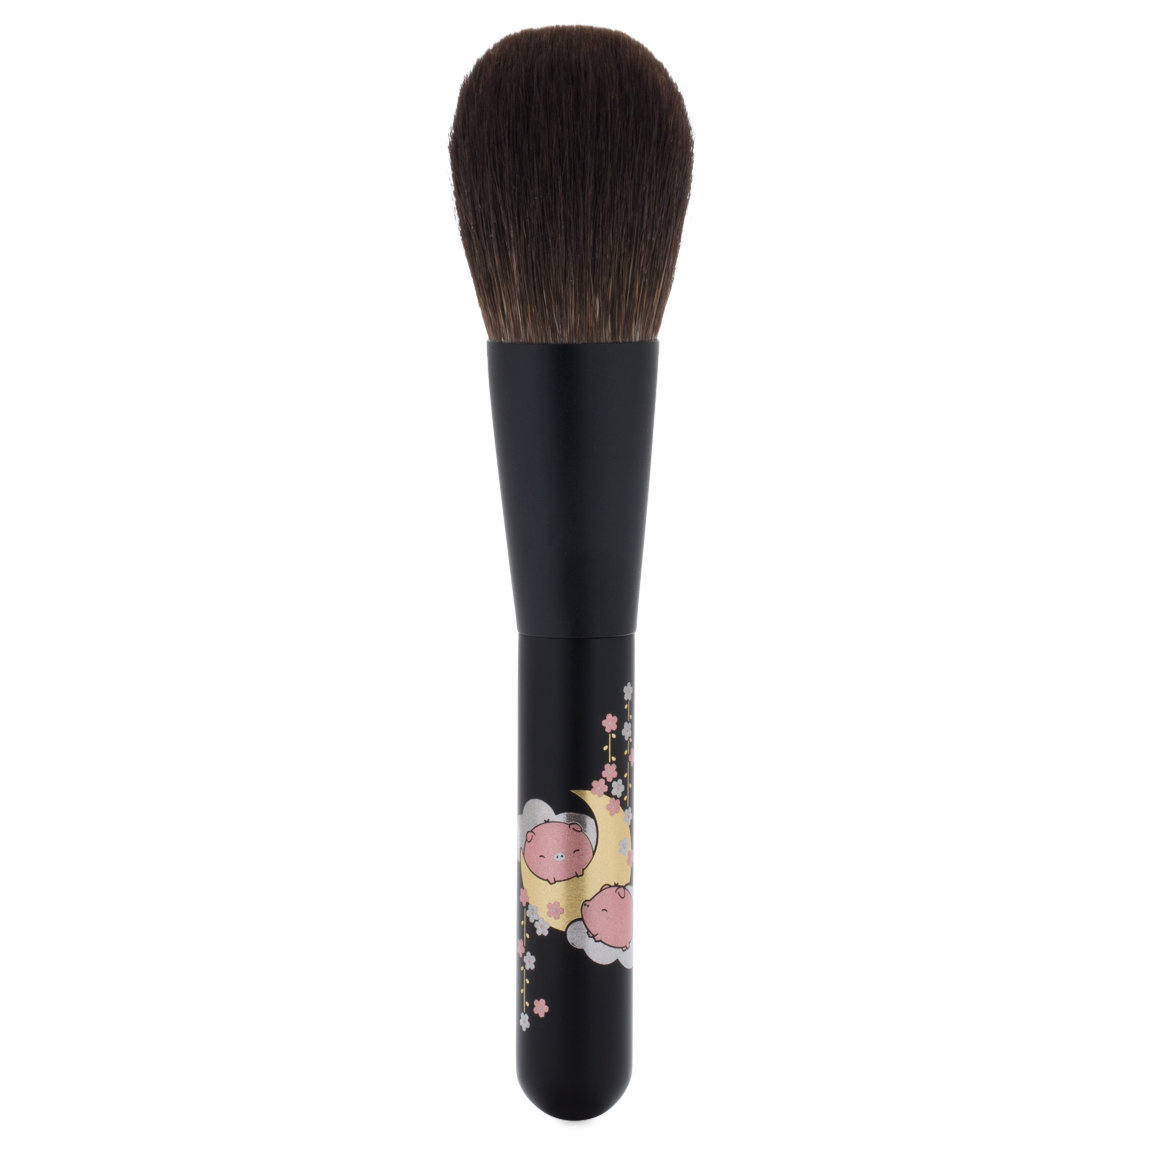 Beautylish Presents The Lunar New Year Brush product swatch.